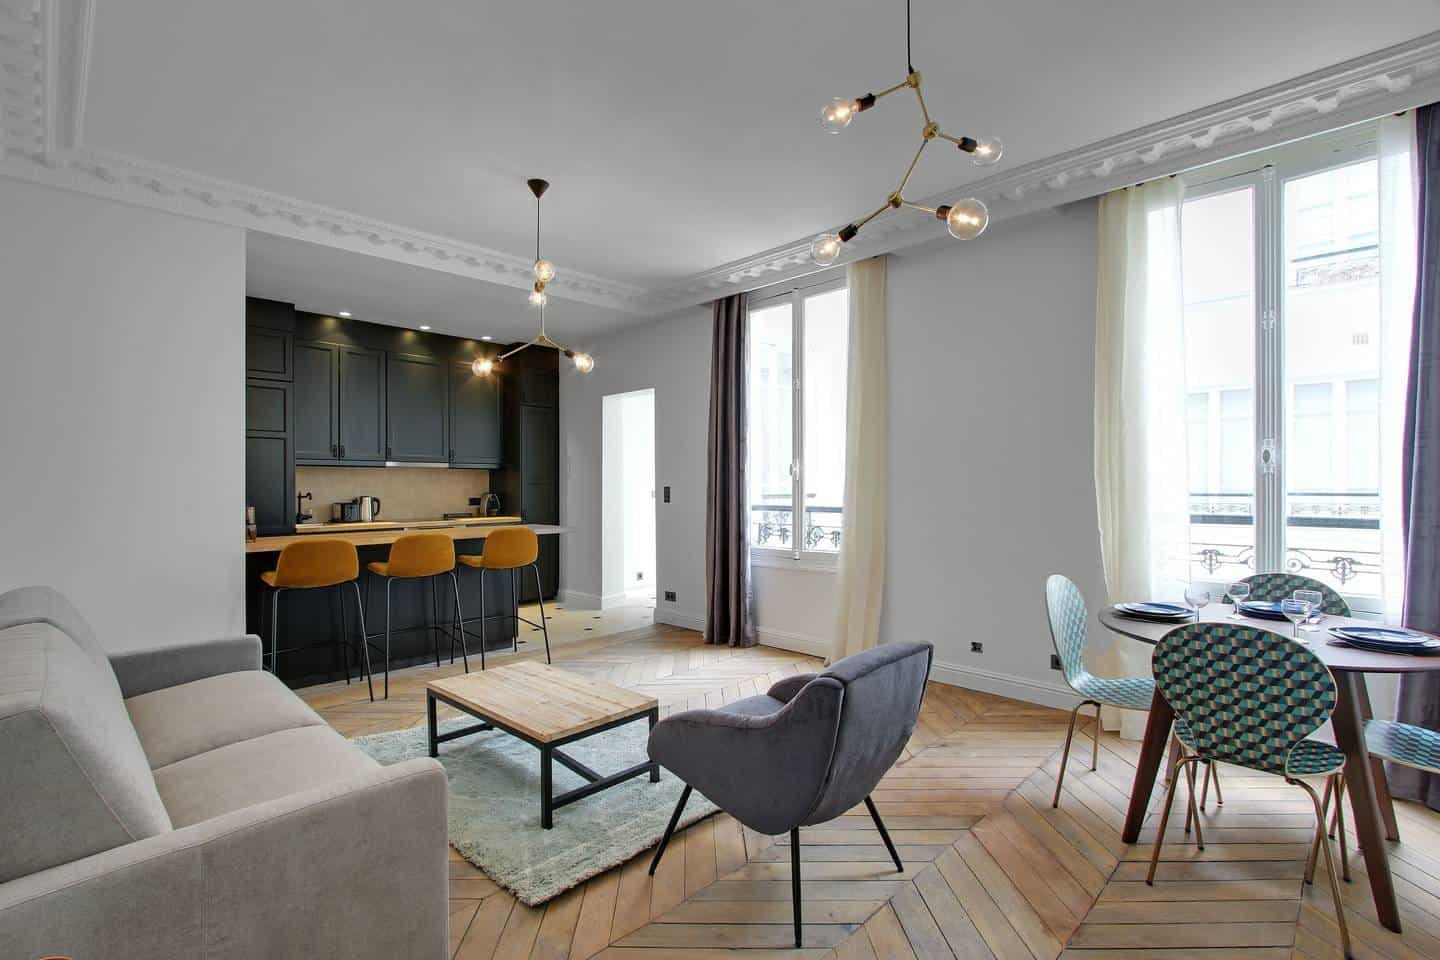 Wow! This Airbnb Paris listing near Boulevard Saint Germain is dreamy. You have to see the pictures!